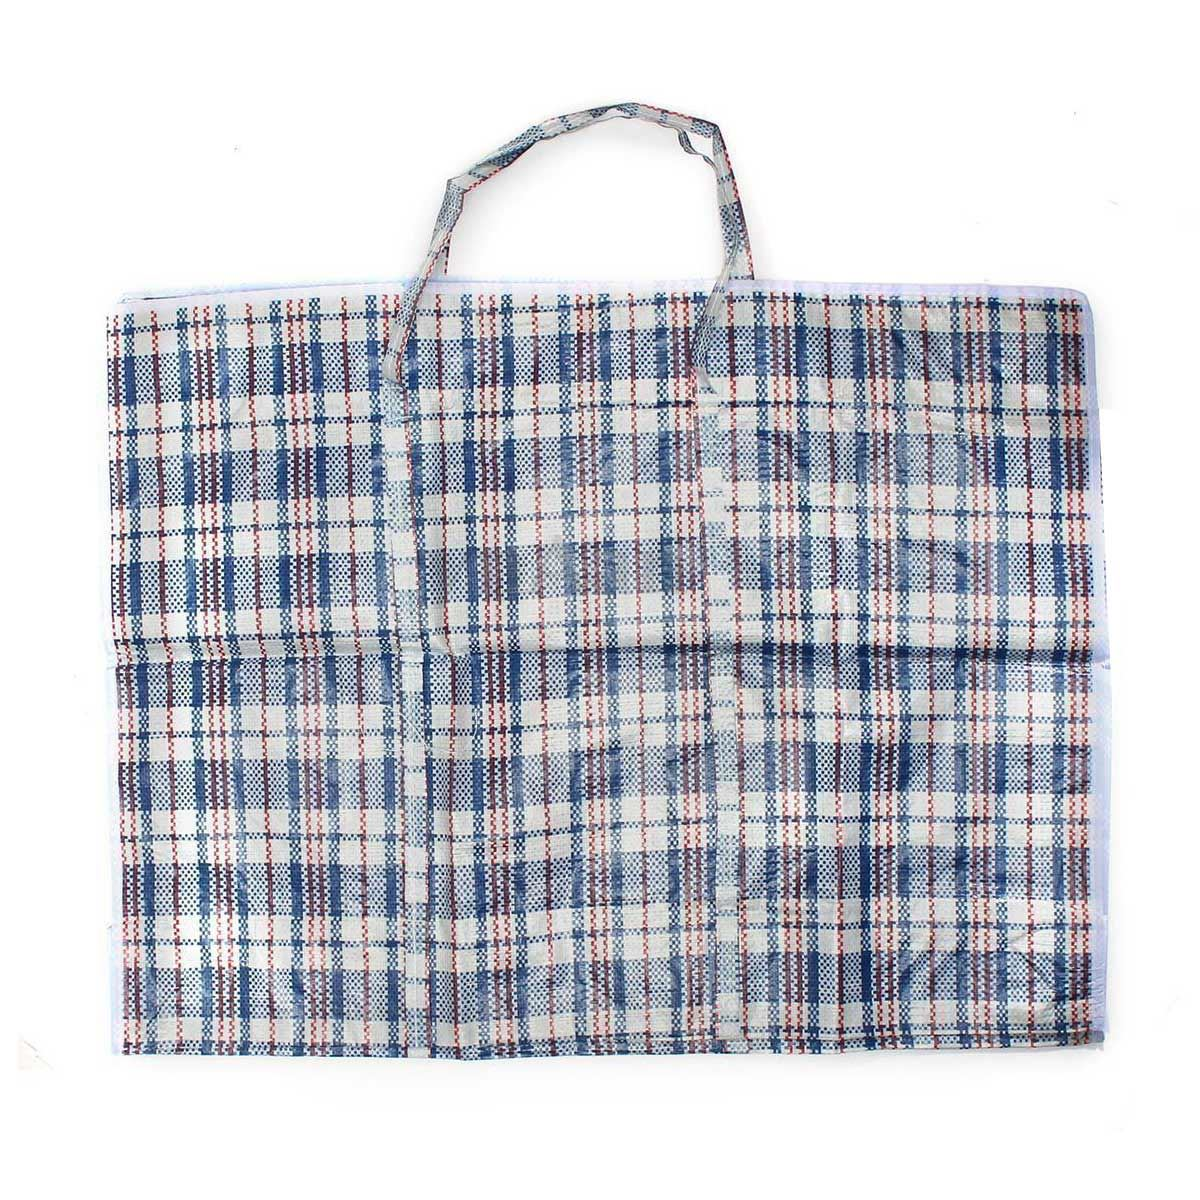 Large Woven Plastic Laundry Bag Tote Storage Zipper Closing Groceries Shopping Ebay